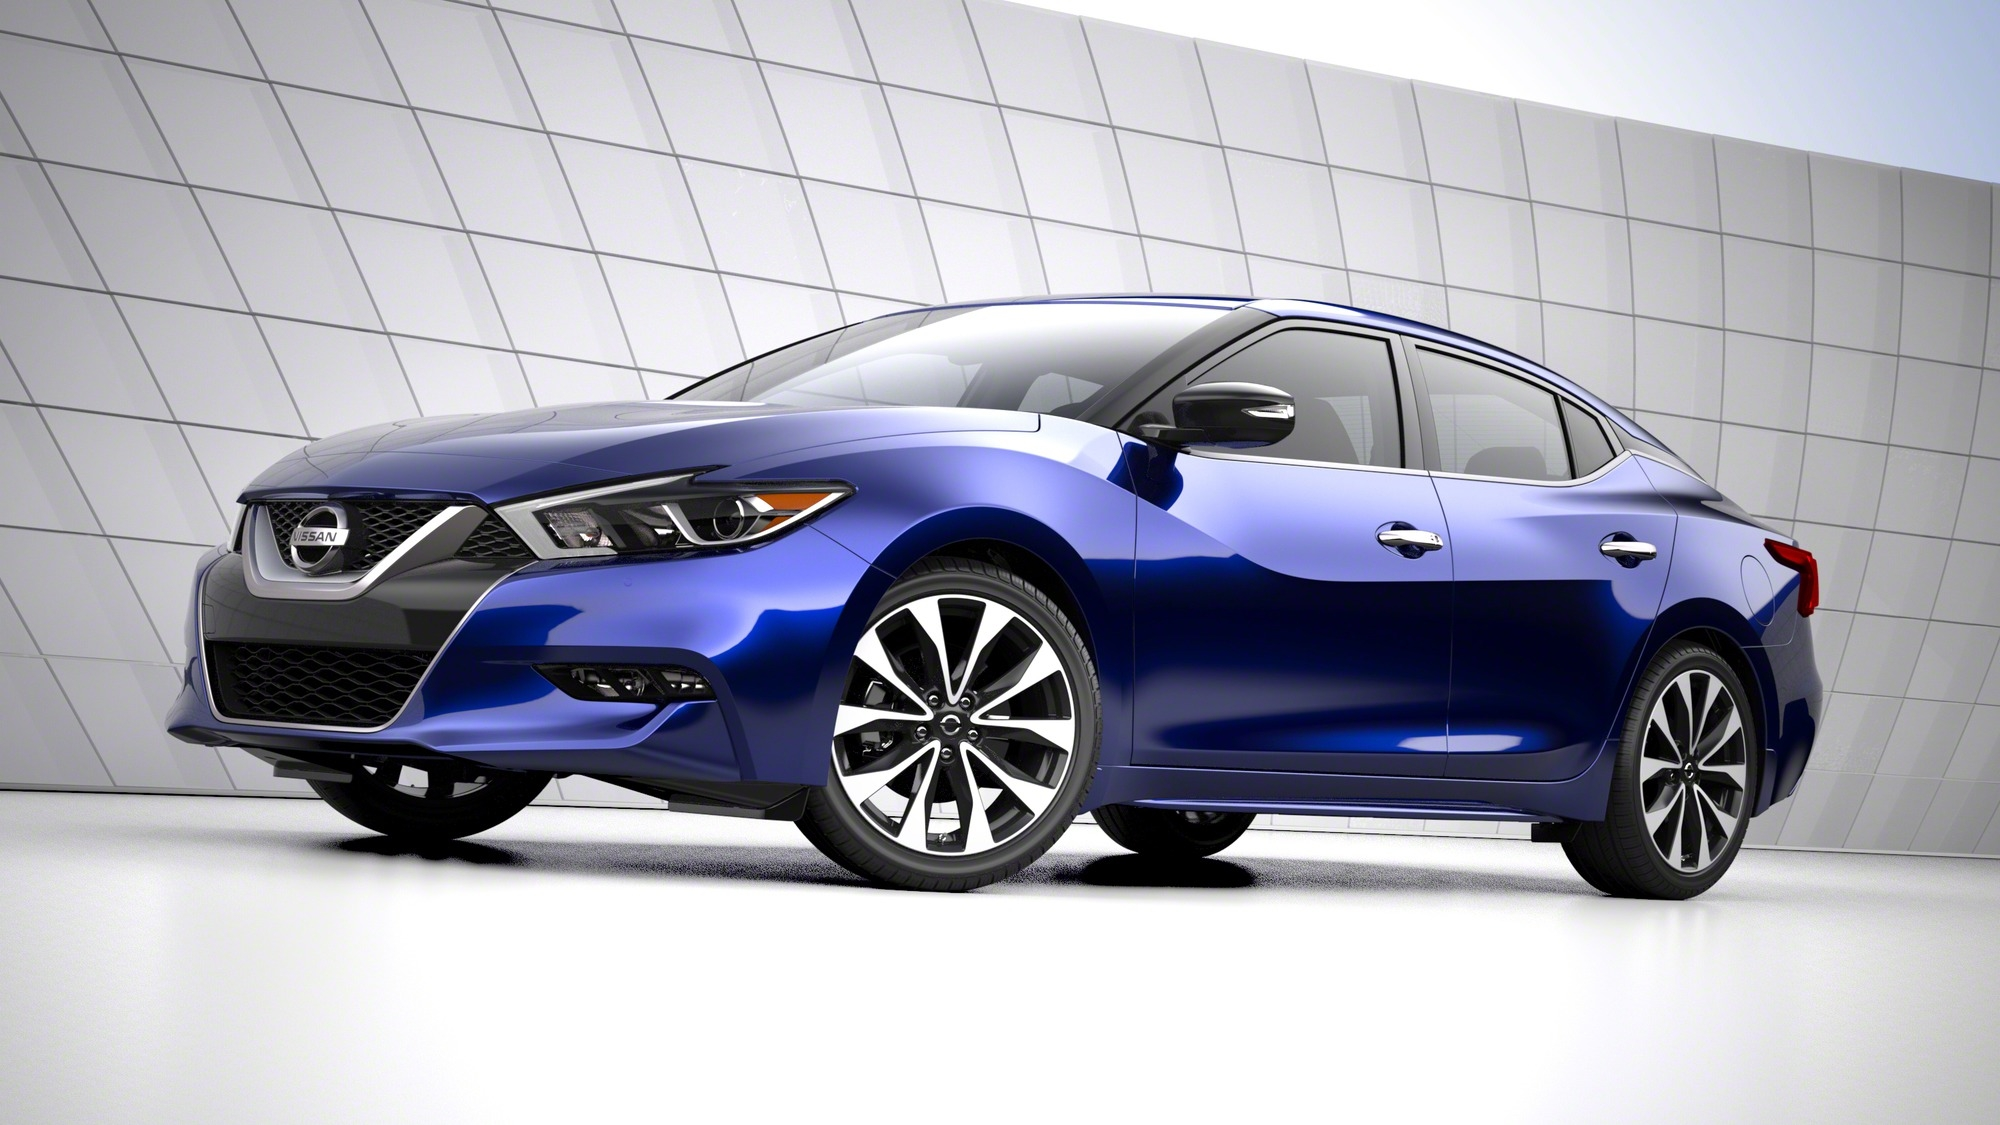 Created By Driving Enthusiasts For The Dramatically Styled 2016 Nissan Maxima Looks Like